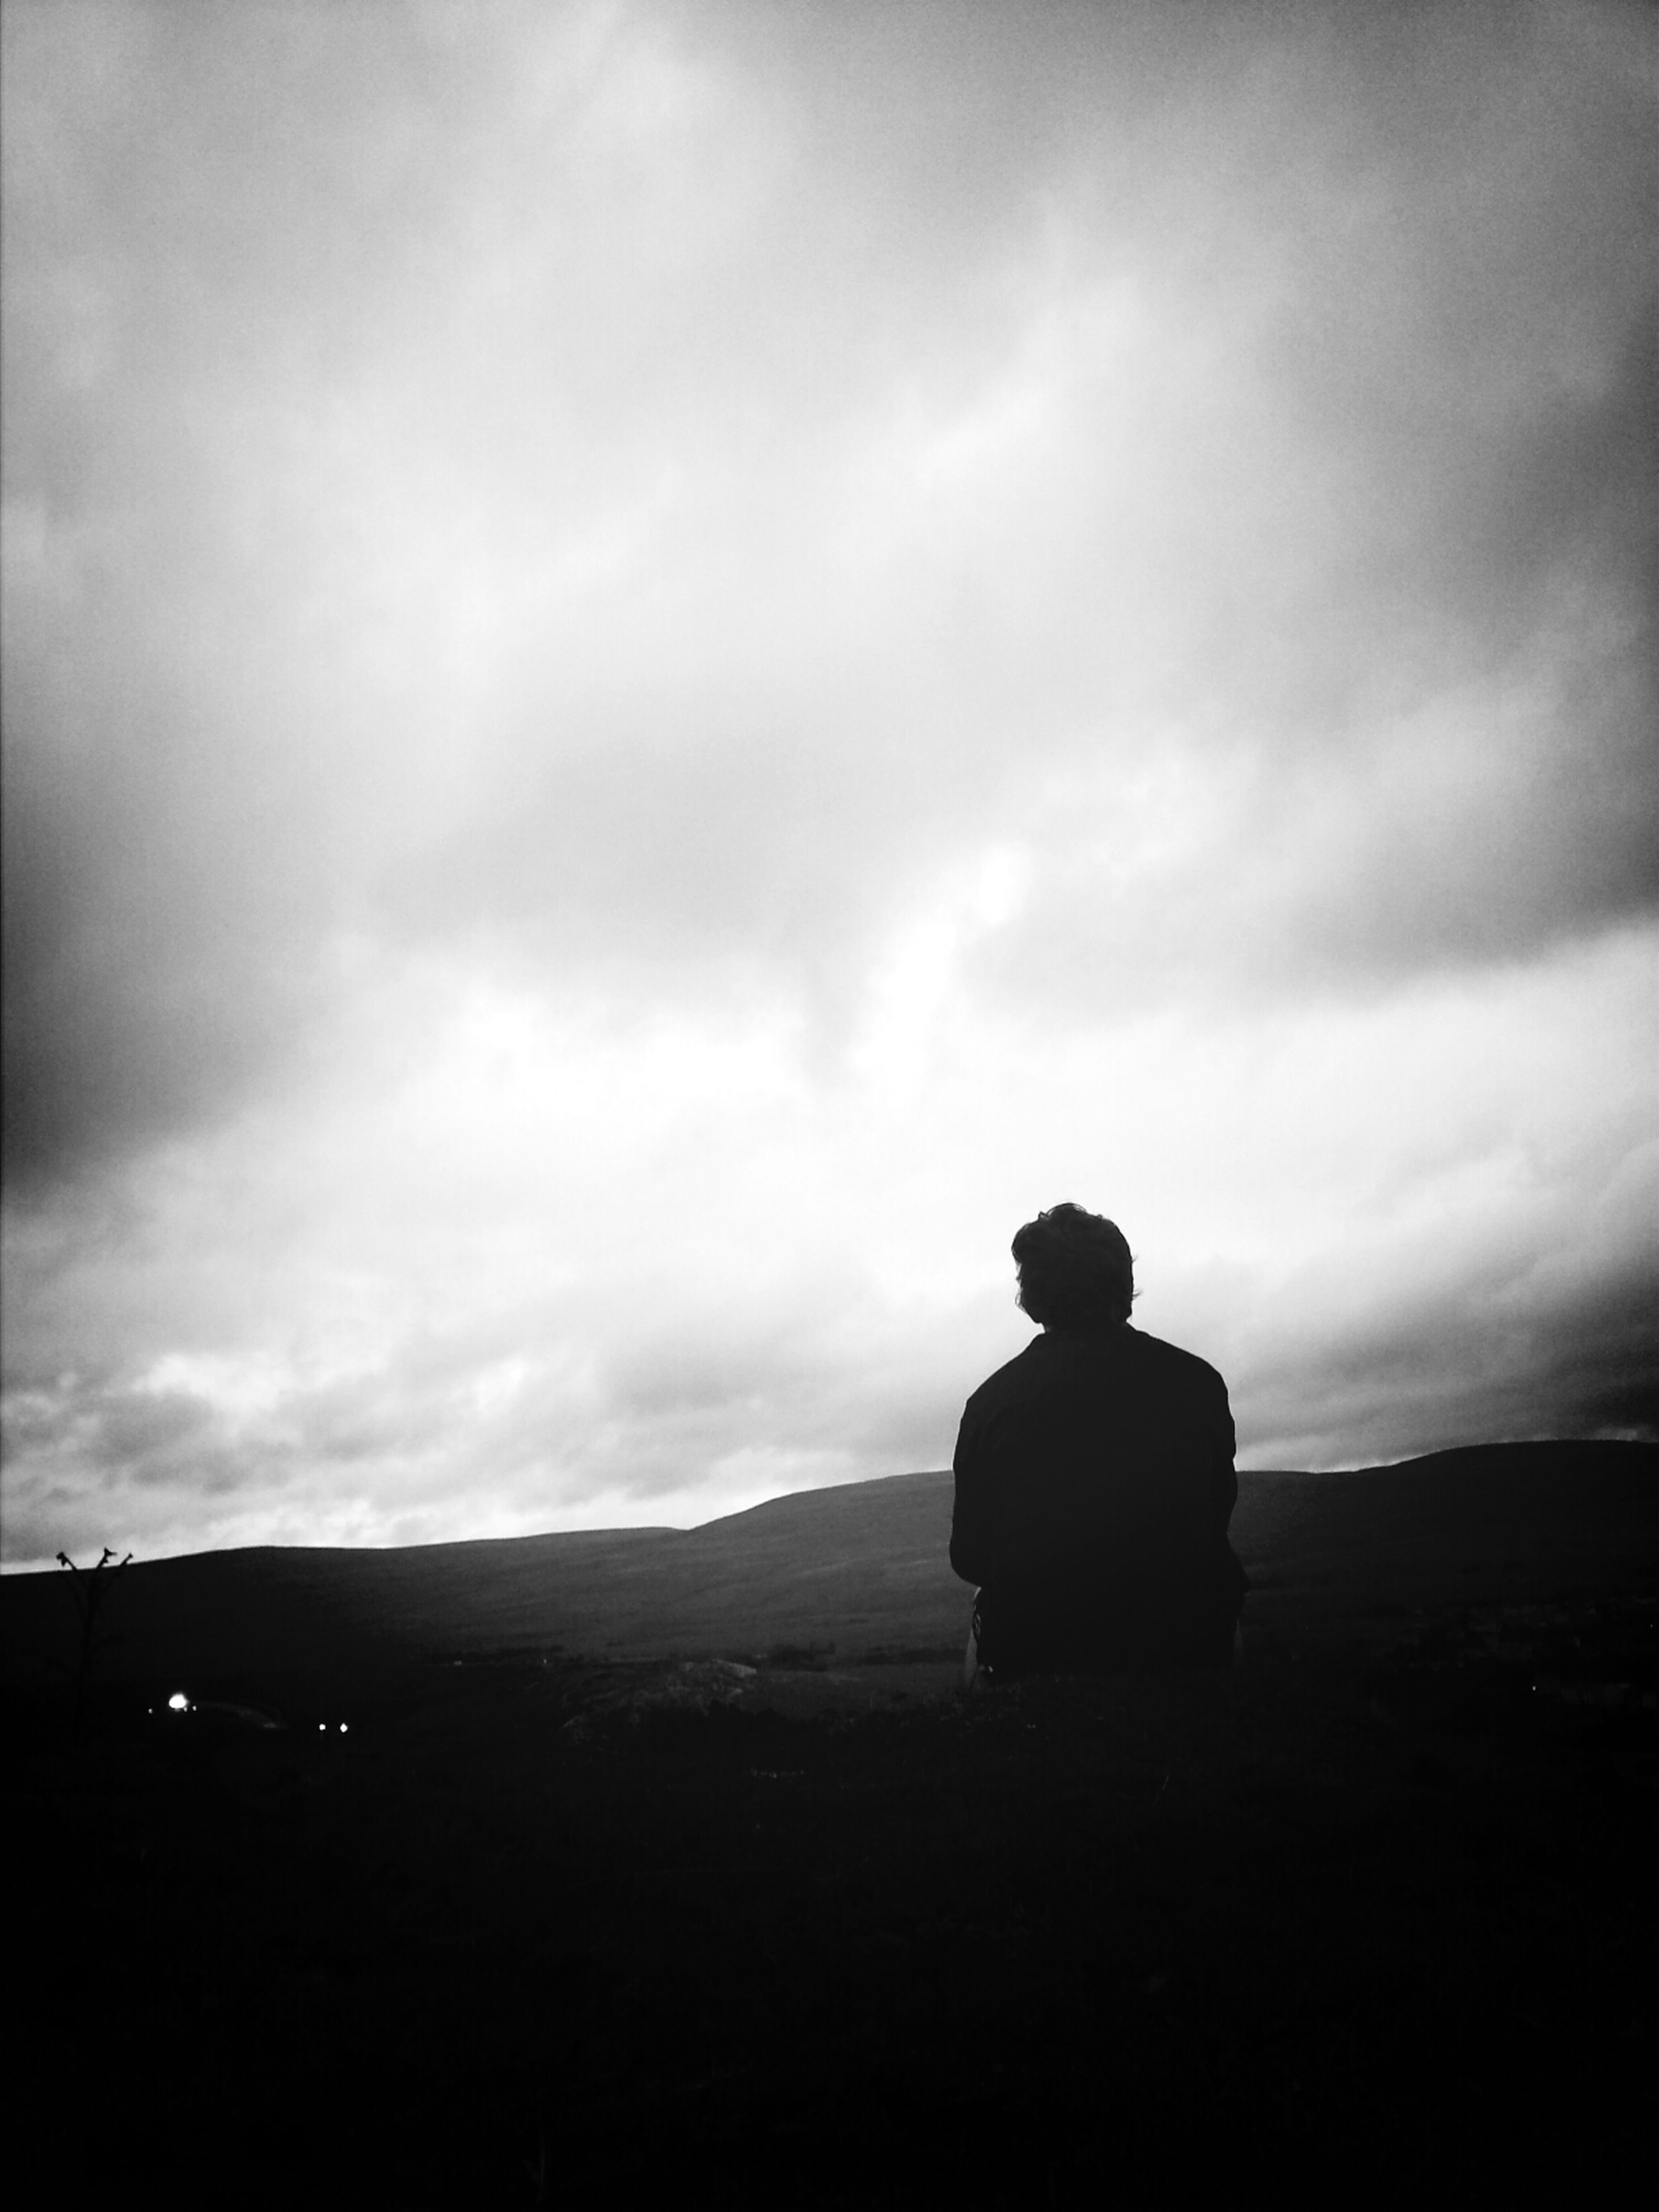 sky, rear view, cloud - sky, men, lifestyles, standing, tranquility, landscape, leisure activity, tranquil scene, silhouette, full length, cloudy, nature, looking at view, cloud, scenics, mountain